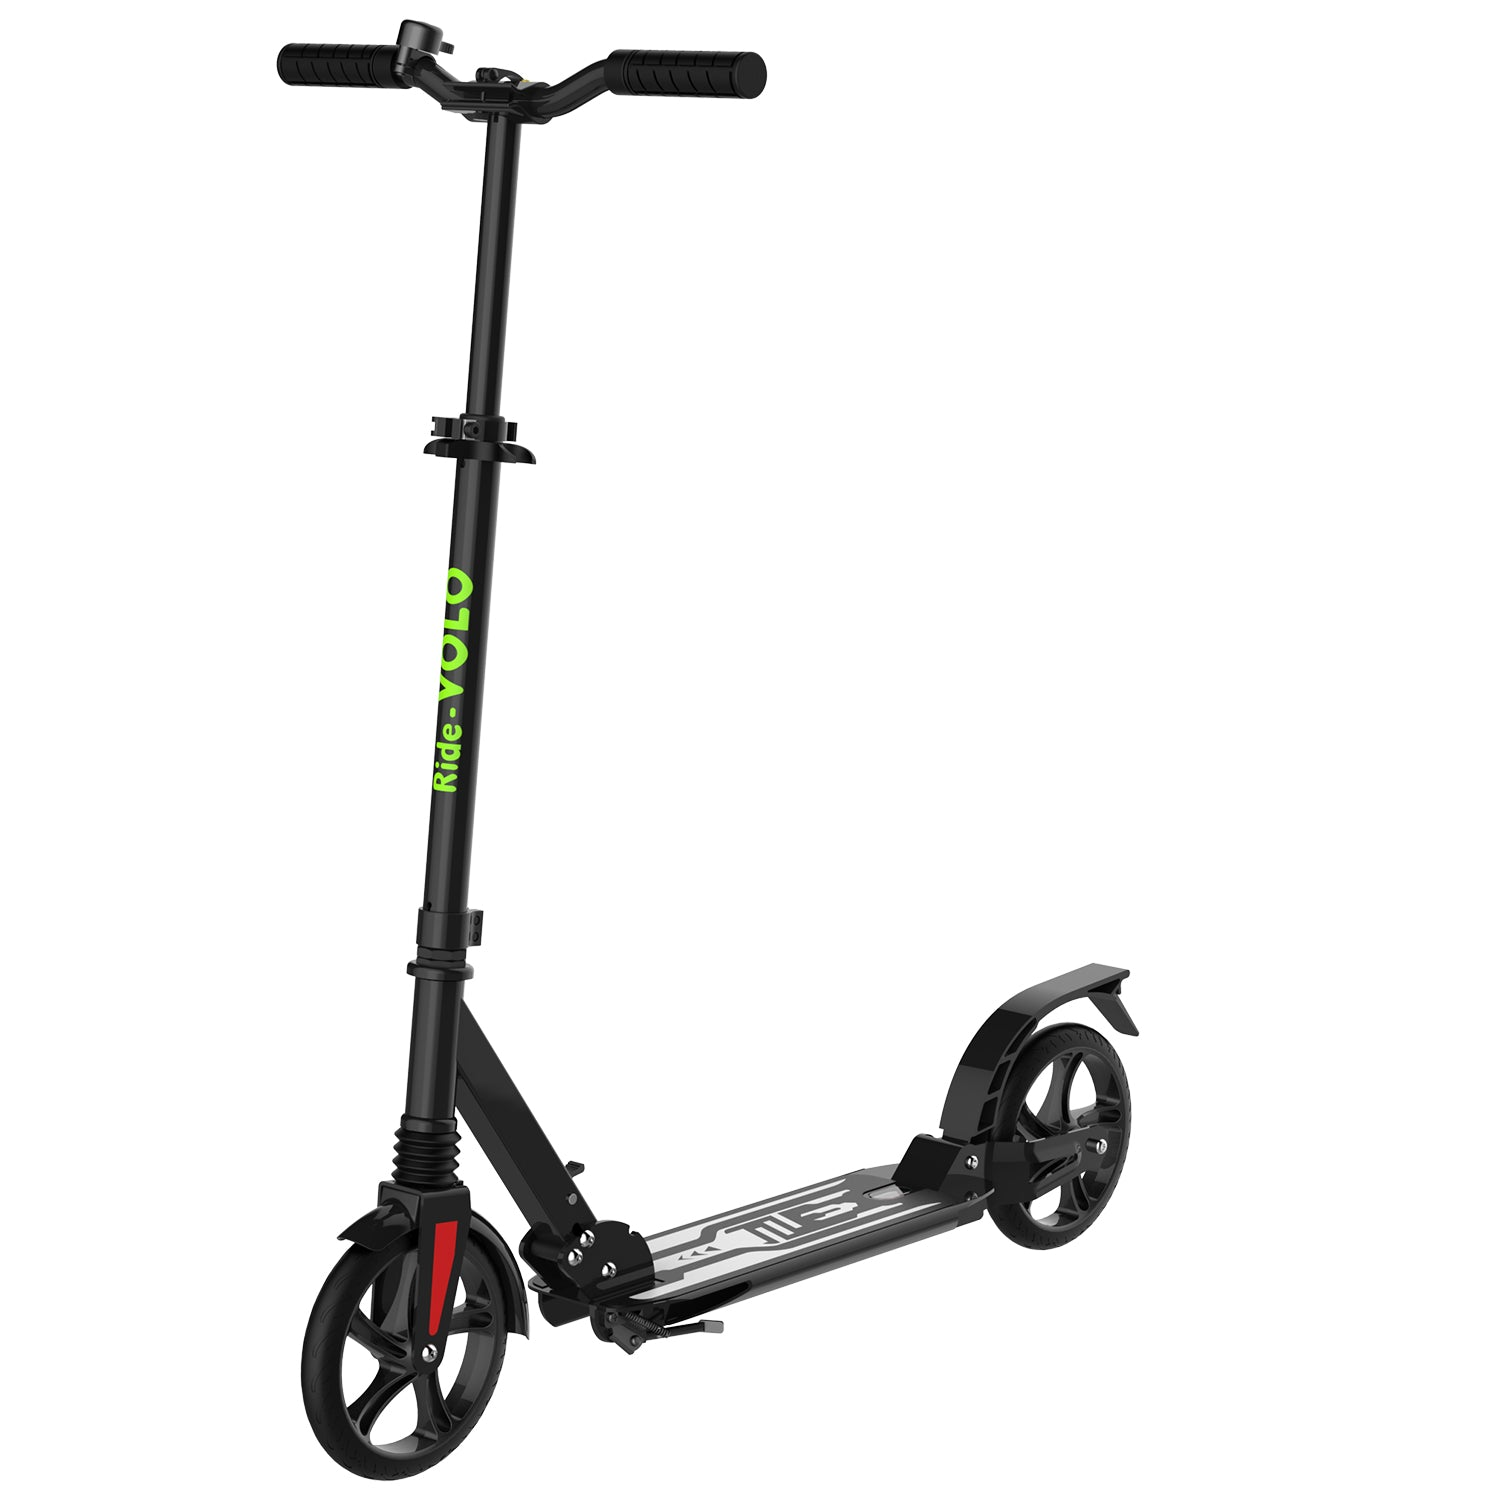 Black K08-1 Kick Scooter Main